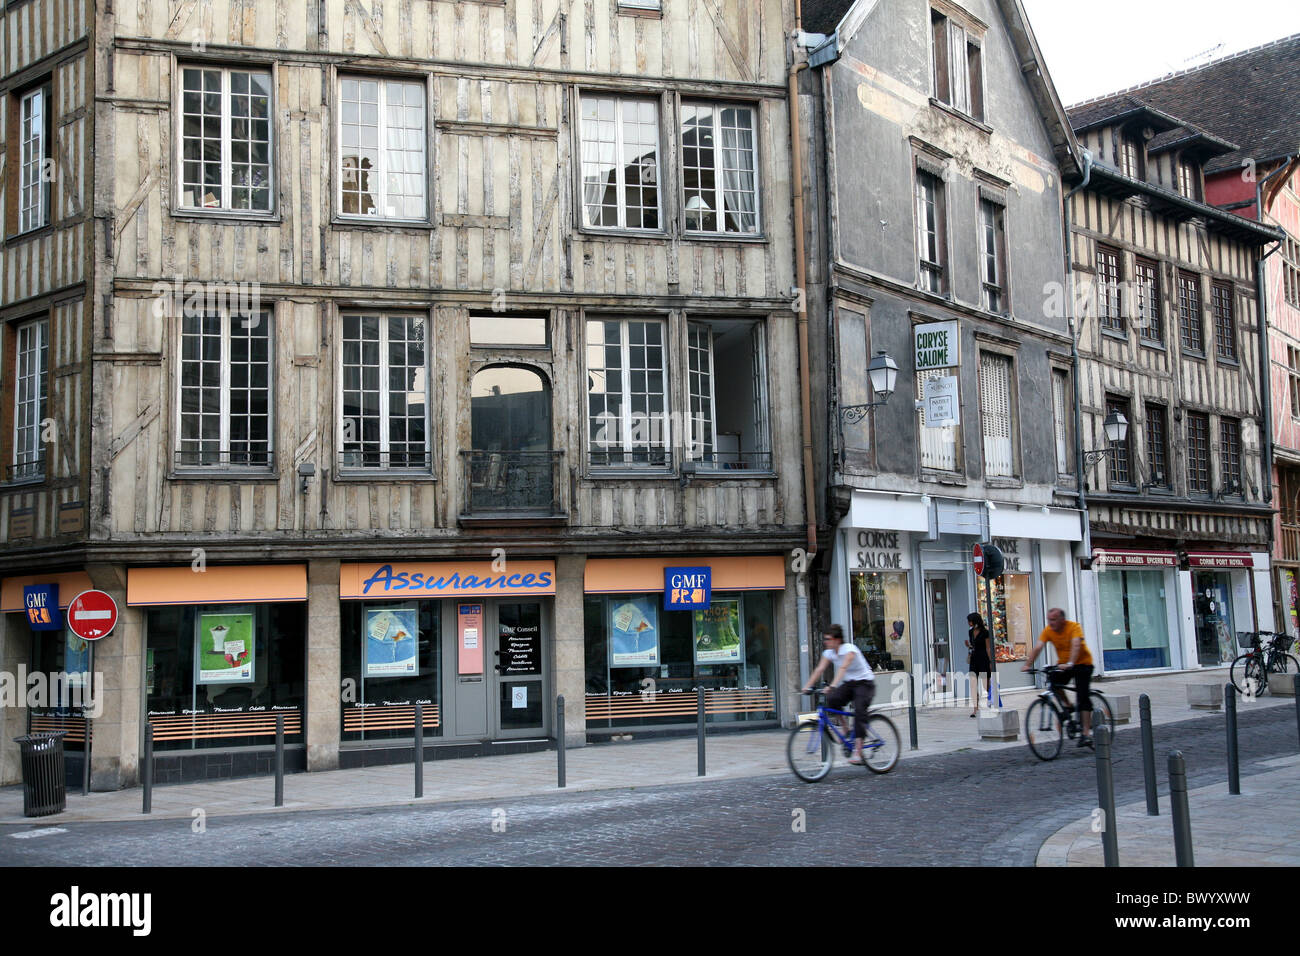 Half timbered medieval buildings in Troyes, France Stock Photo